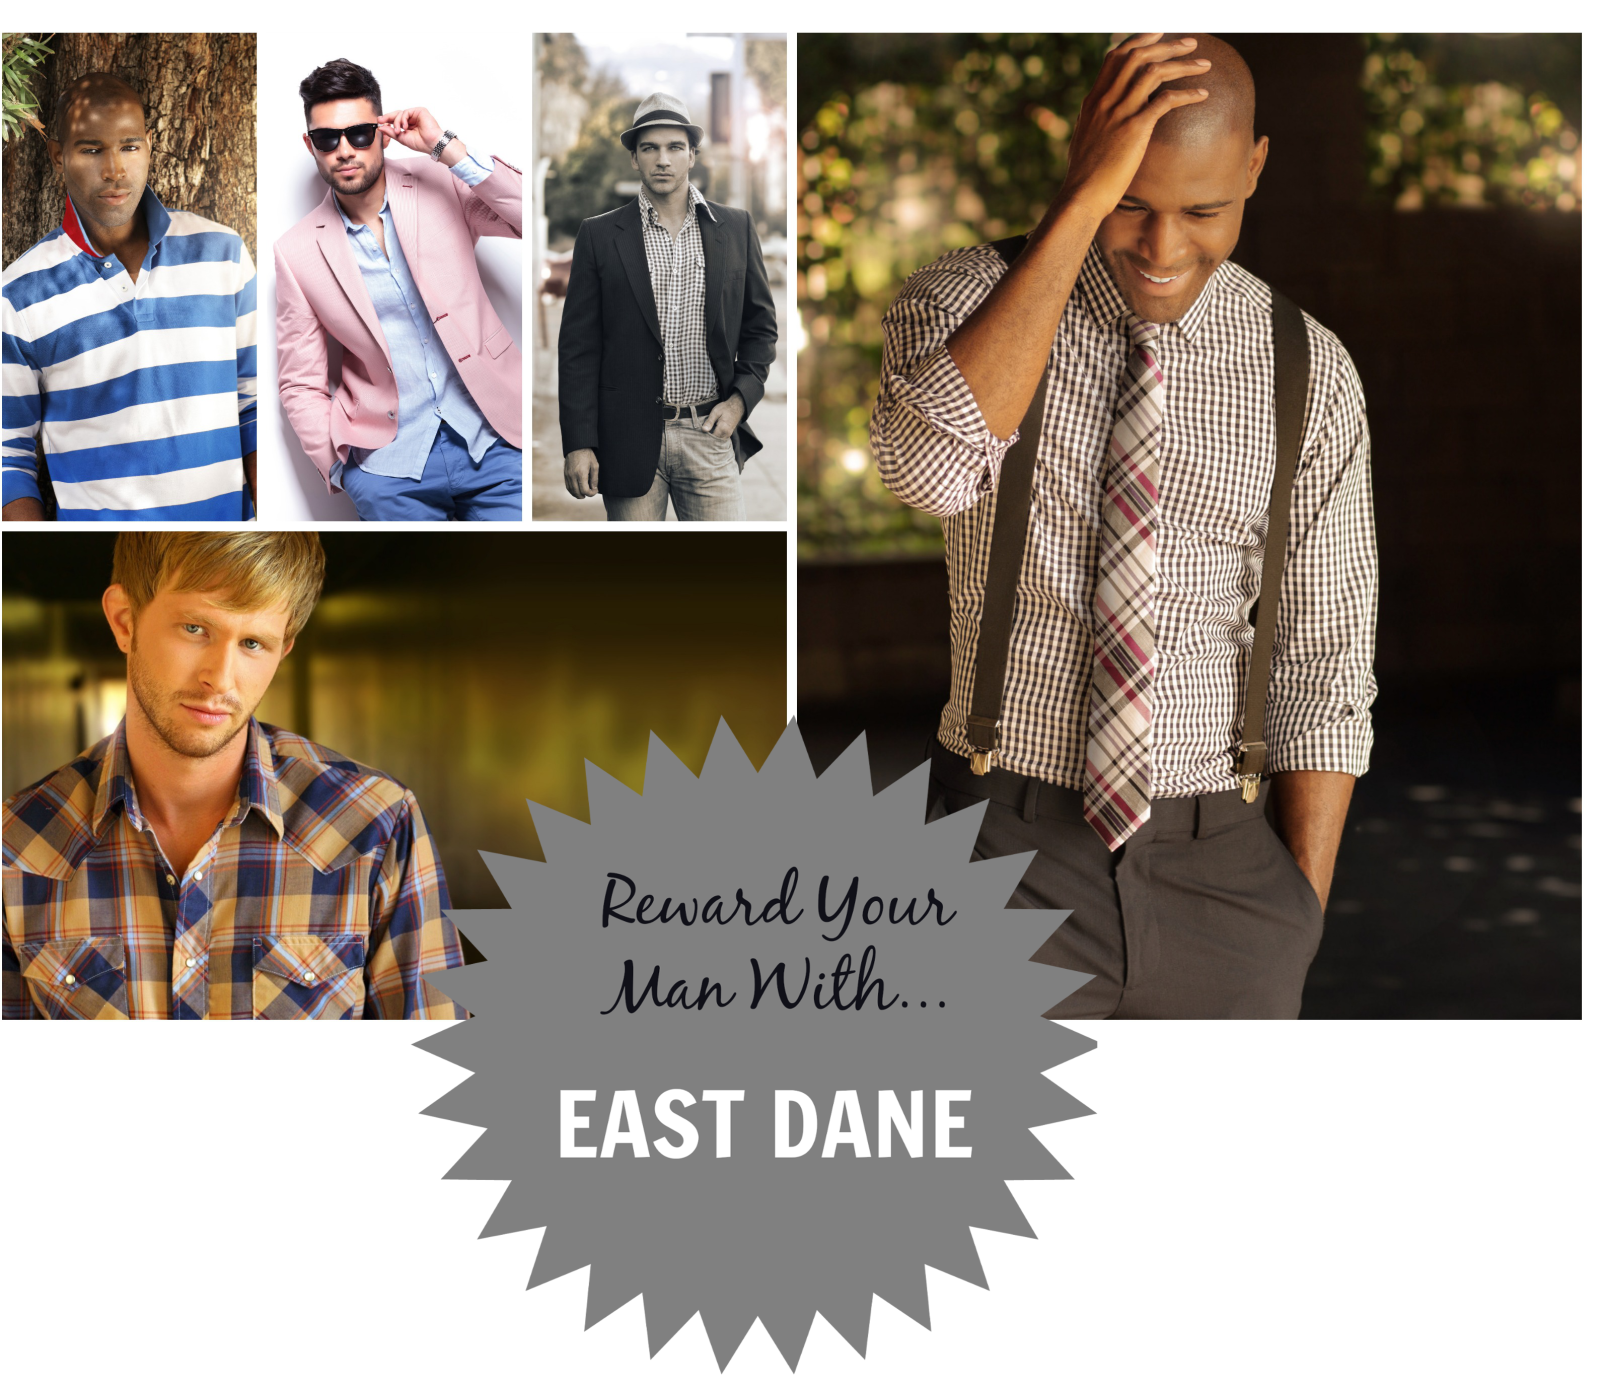 Give Your Man a Fashion Boost in the EastDane.com Give Away! 4-Winners!!